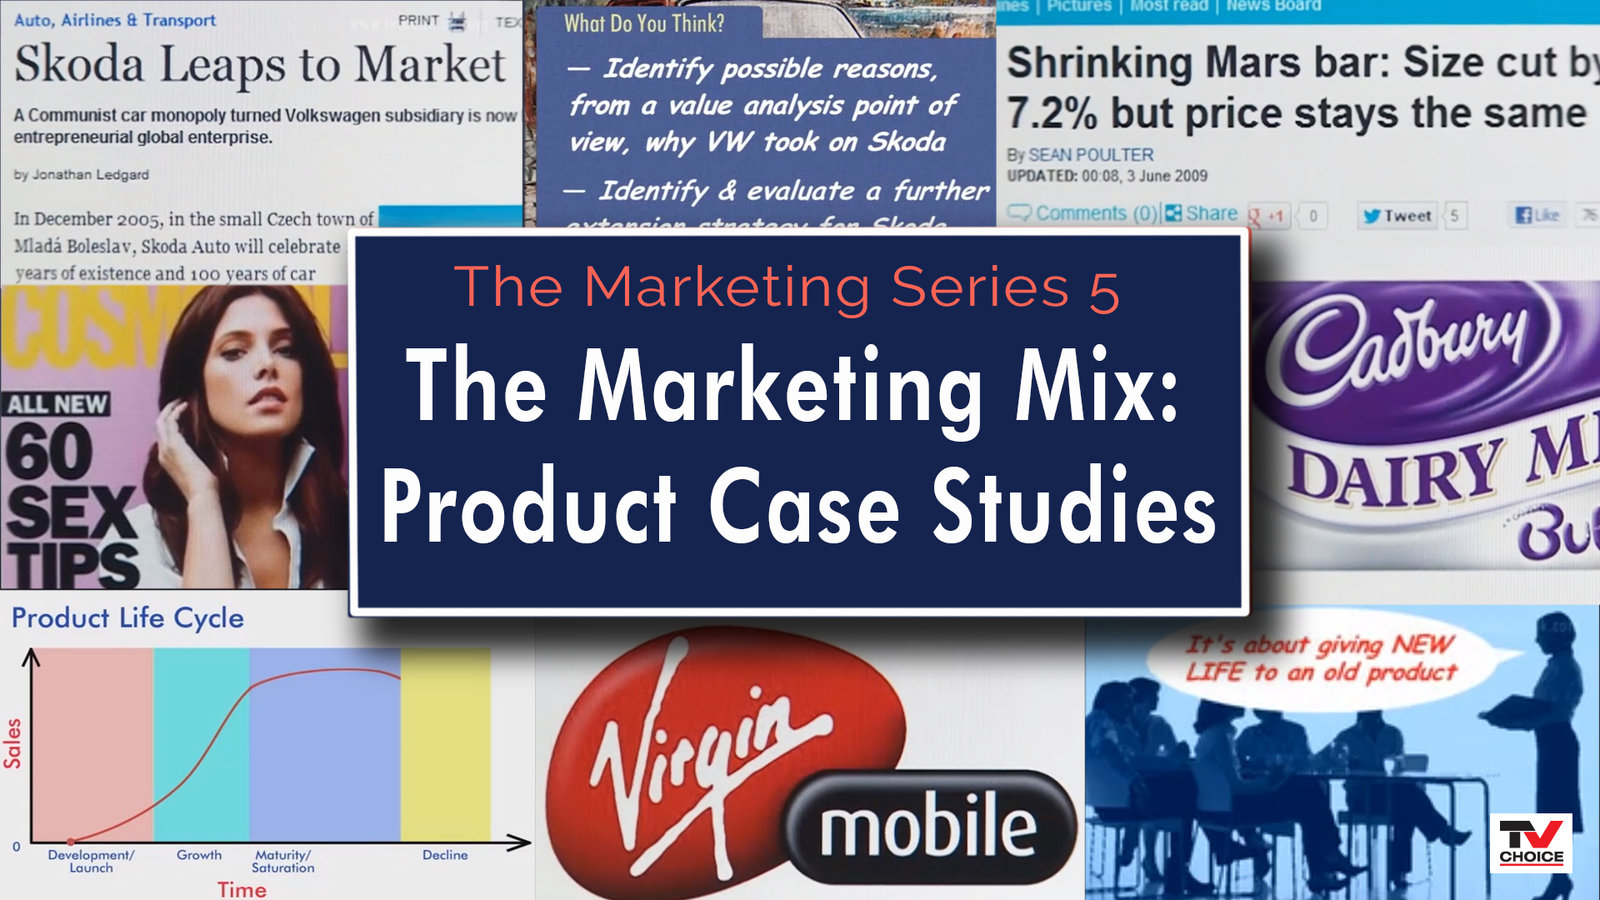 Marketing Mix: Product Case Studies